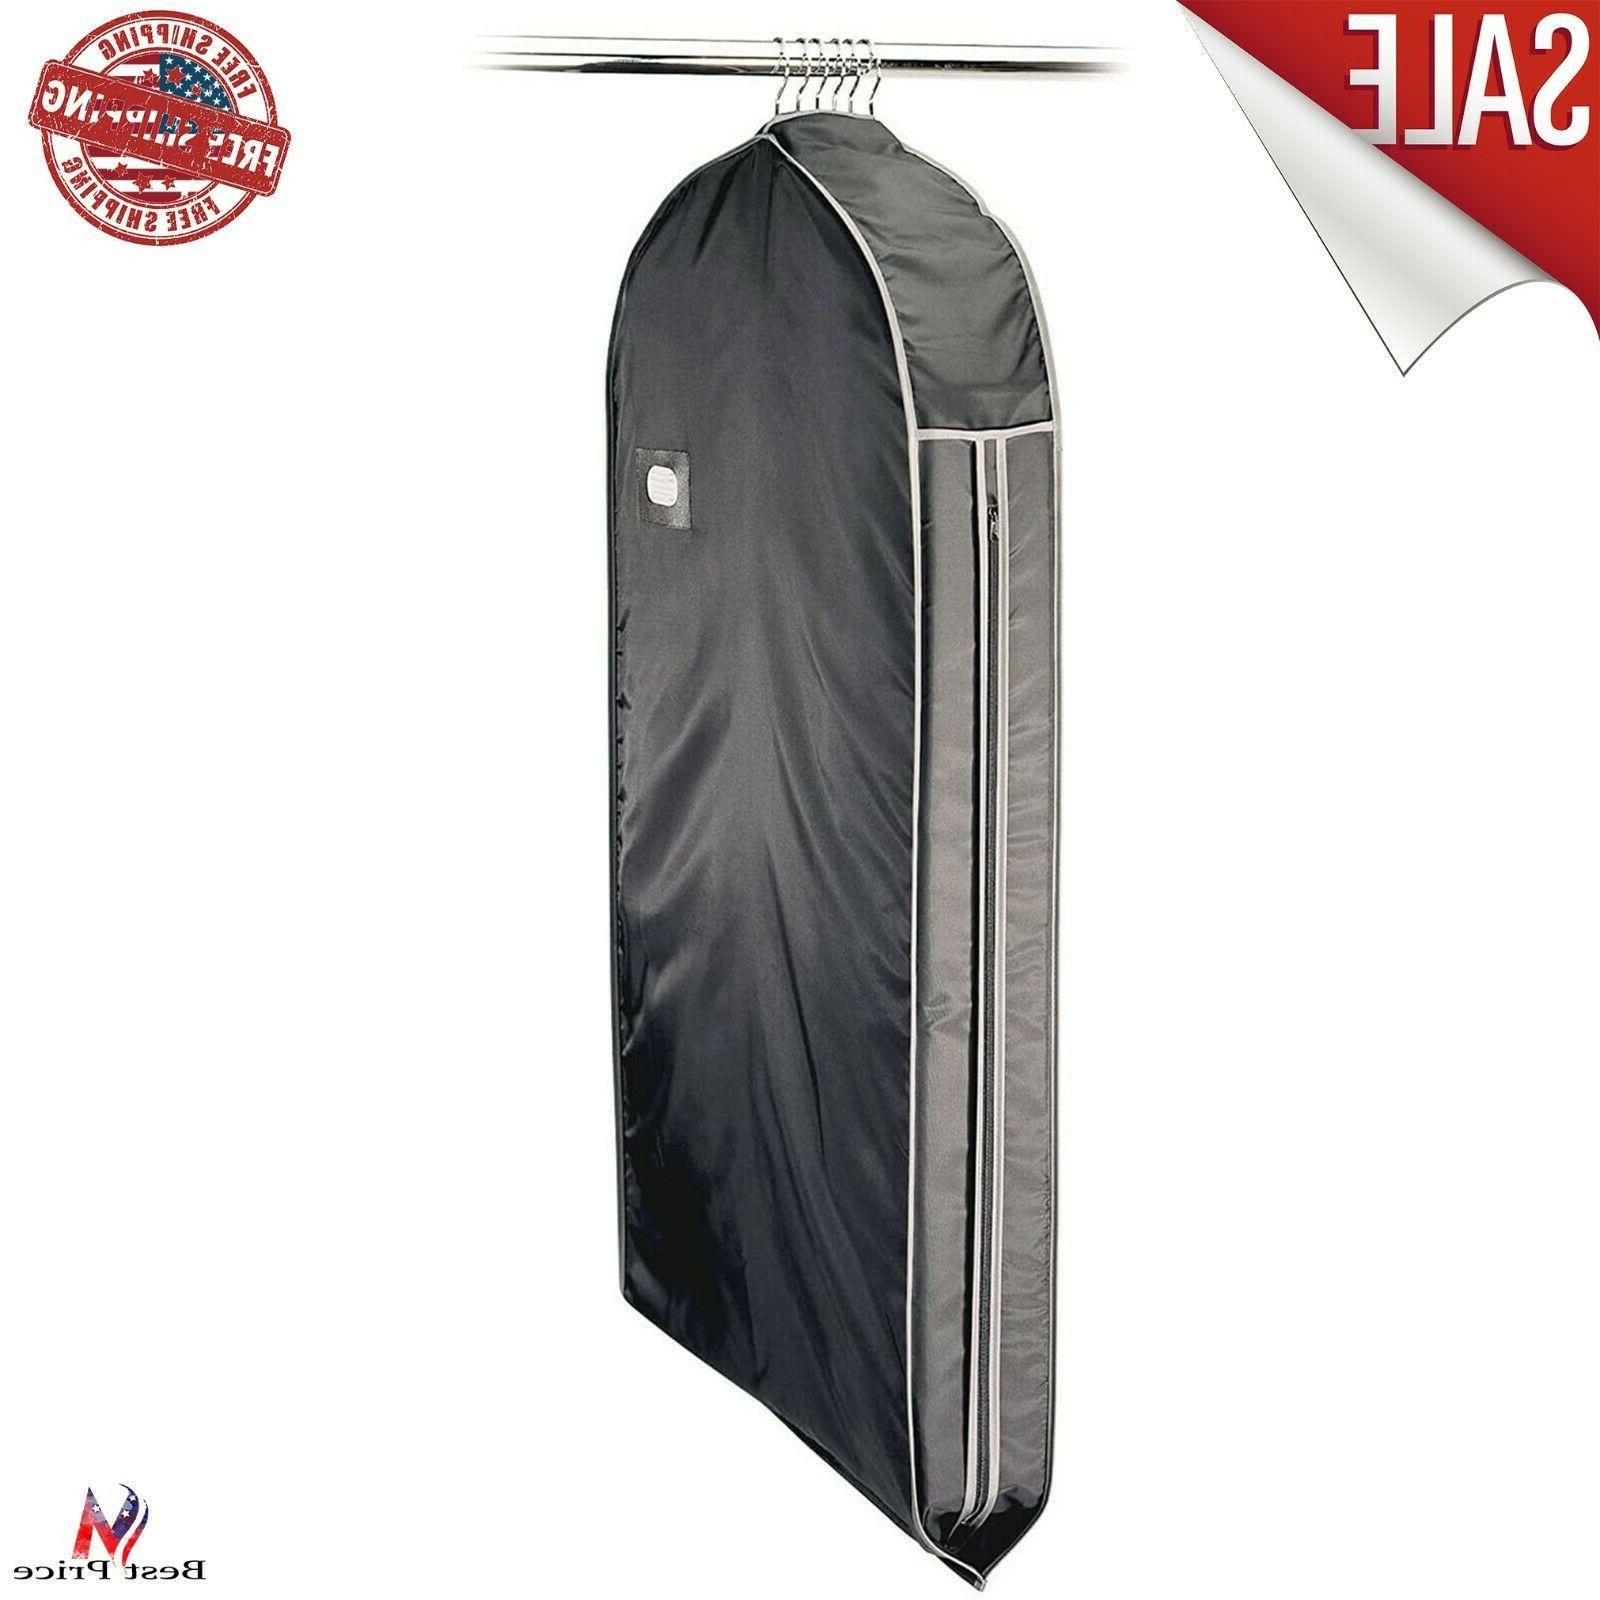 Solid Garment Travel Bag Suit With Pocket ID Zipper